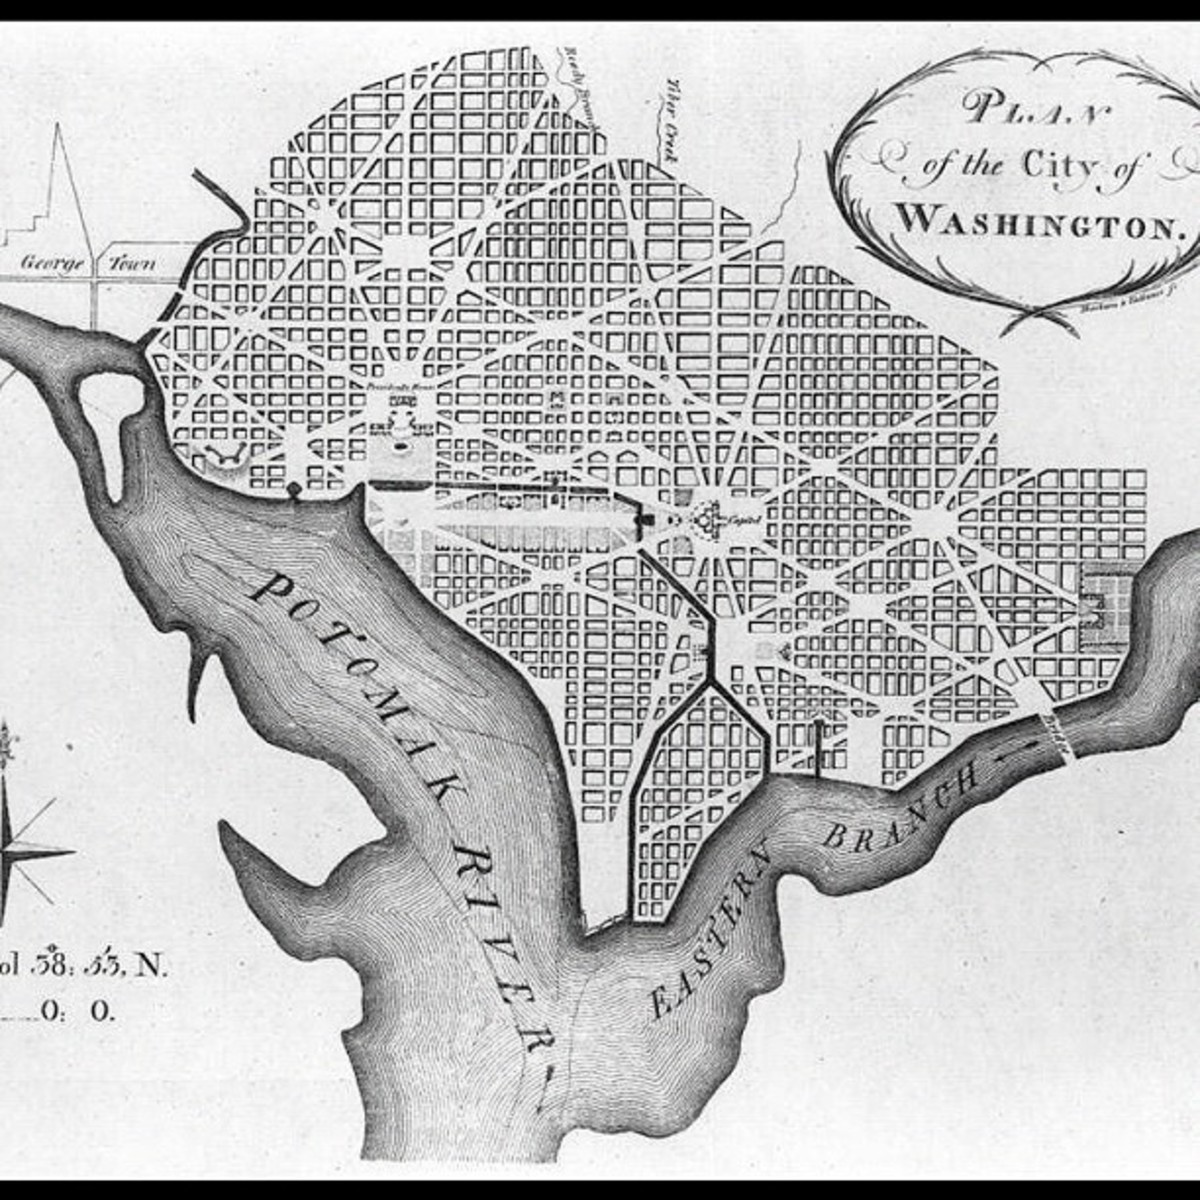 The Design of Washington, D.C.